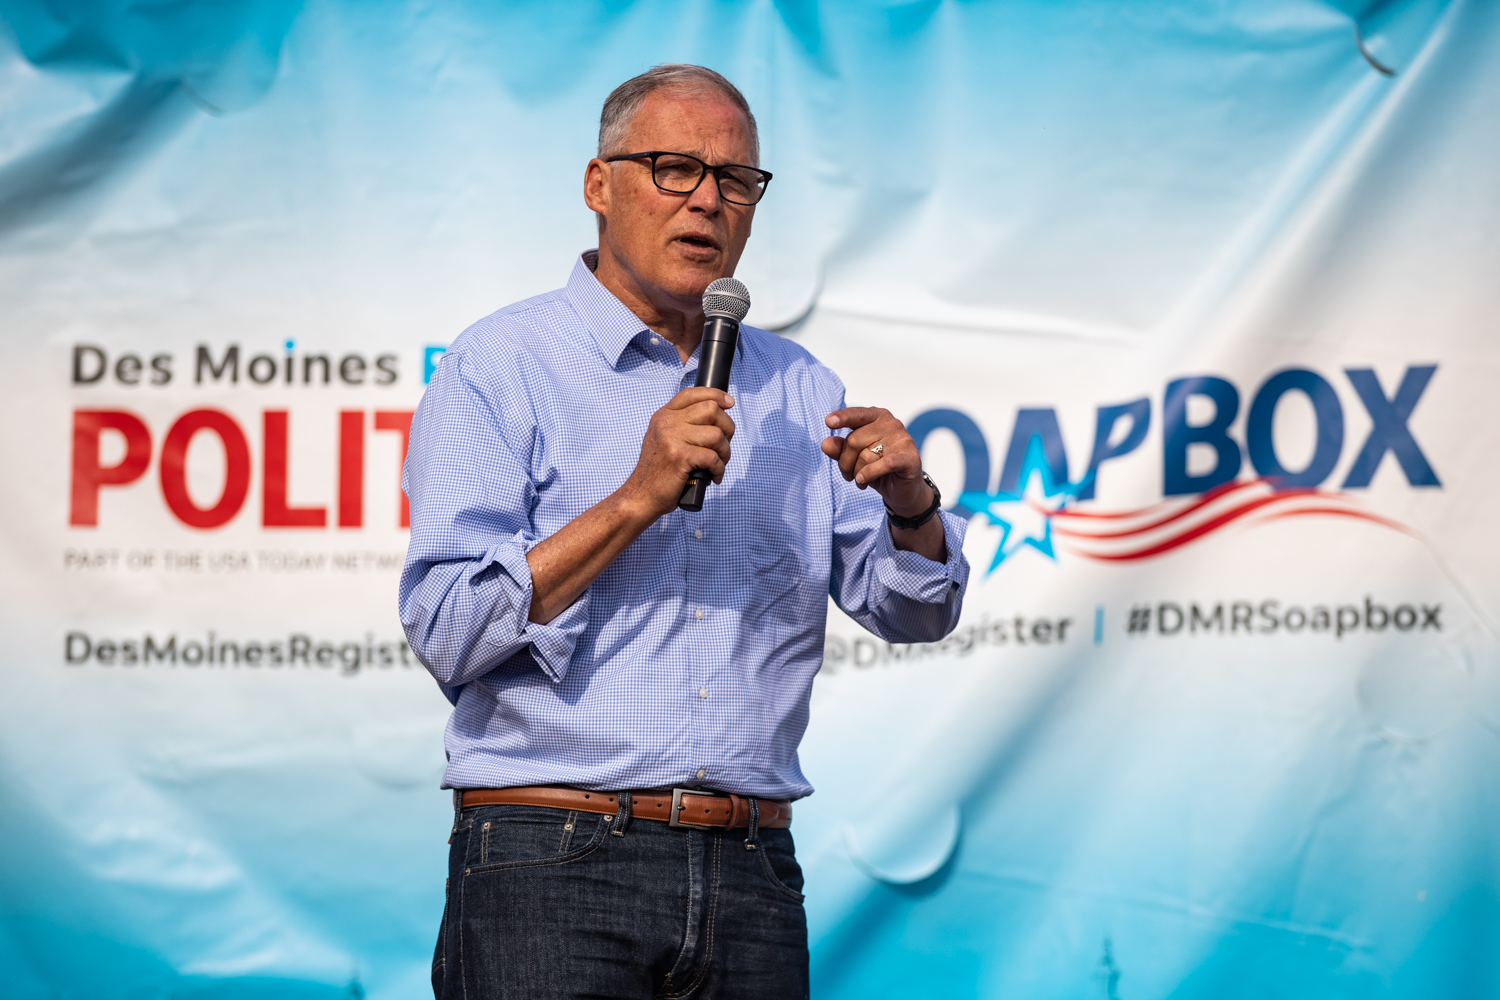 Washington Gov. Jay Inslee speaks at the Des Moines Register Political Soapbox during the Iowa State Fair in Des Moines, IA on Saturday, August 10, 2019.